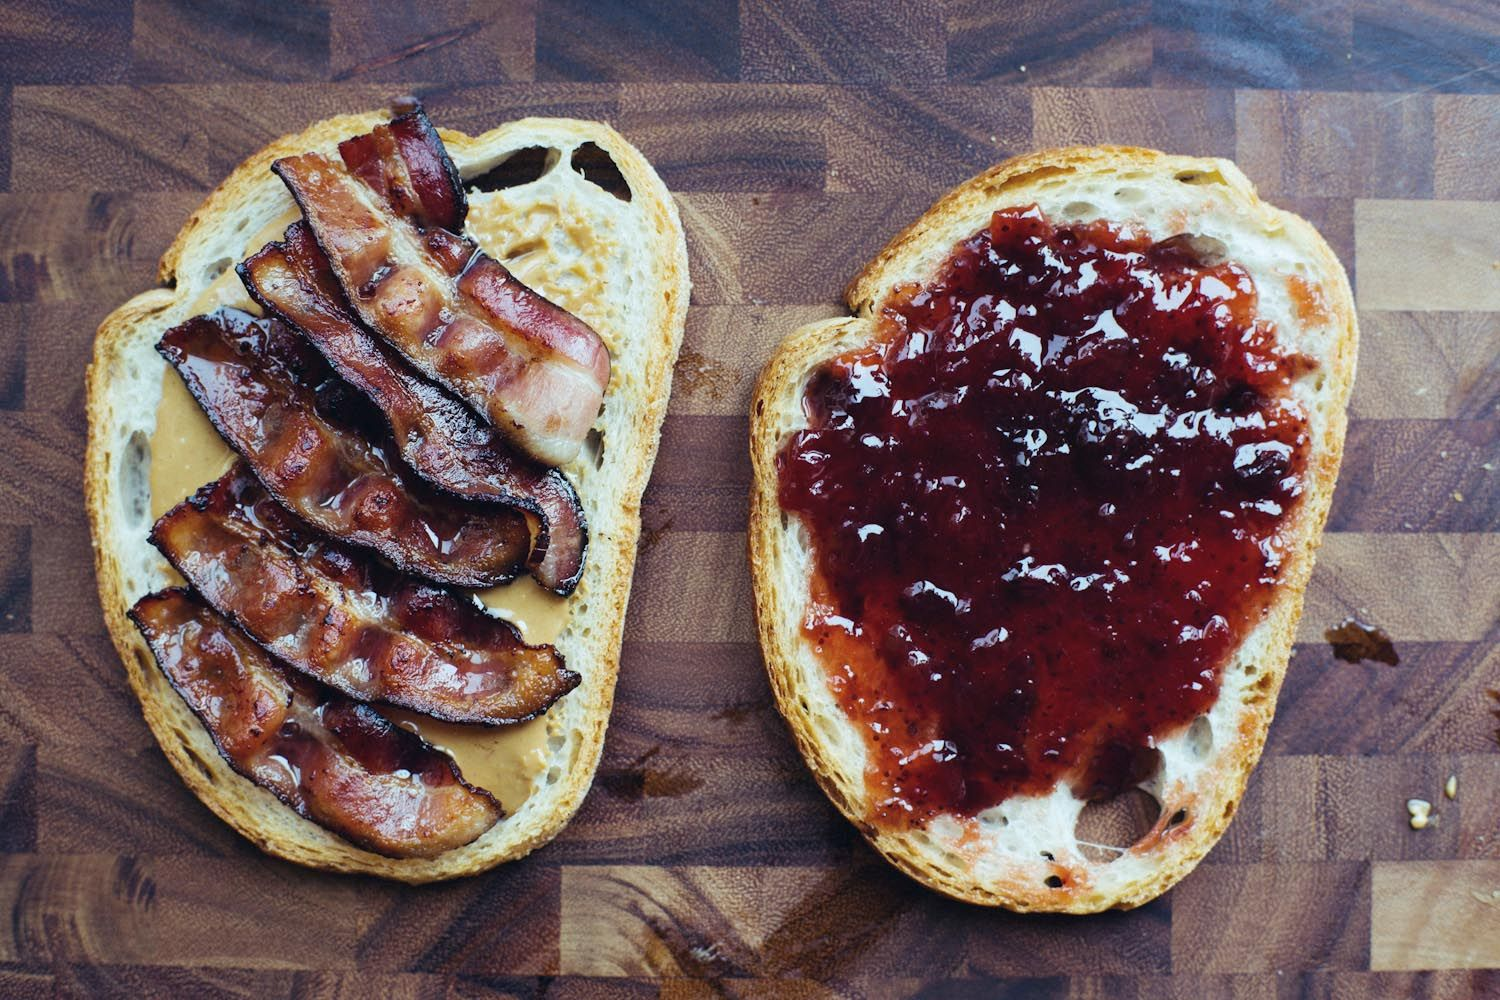 Make This Grilled Bacon Peanut Butter Jelly Tasting Table Peanut Butter Jelly Recipes Bacon On The Grill Peanut Butter Jelly Sandwich